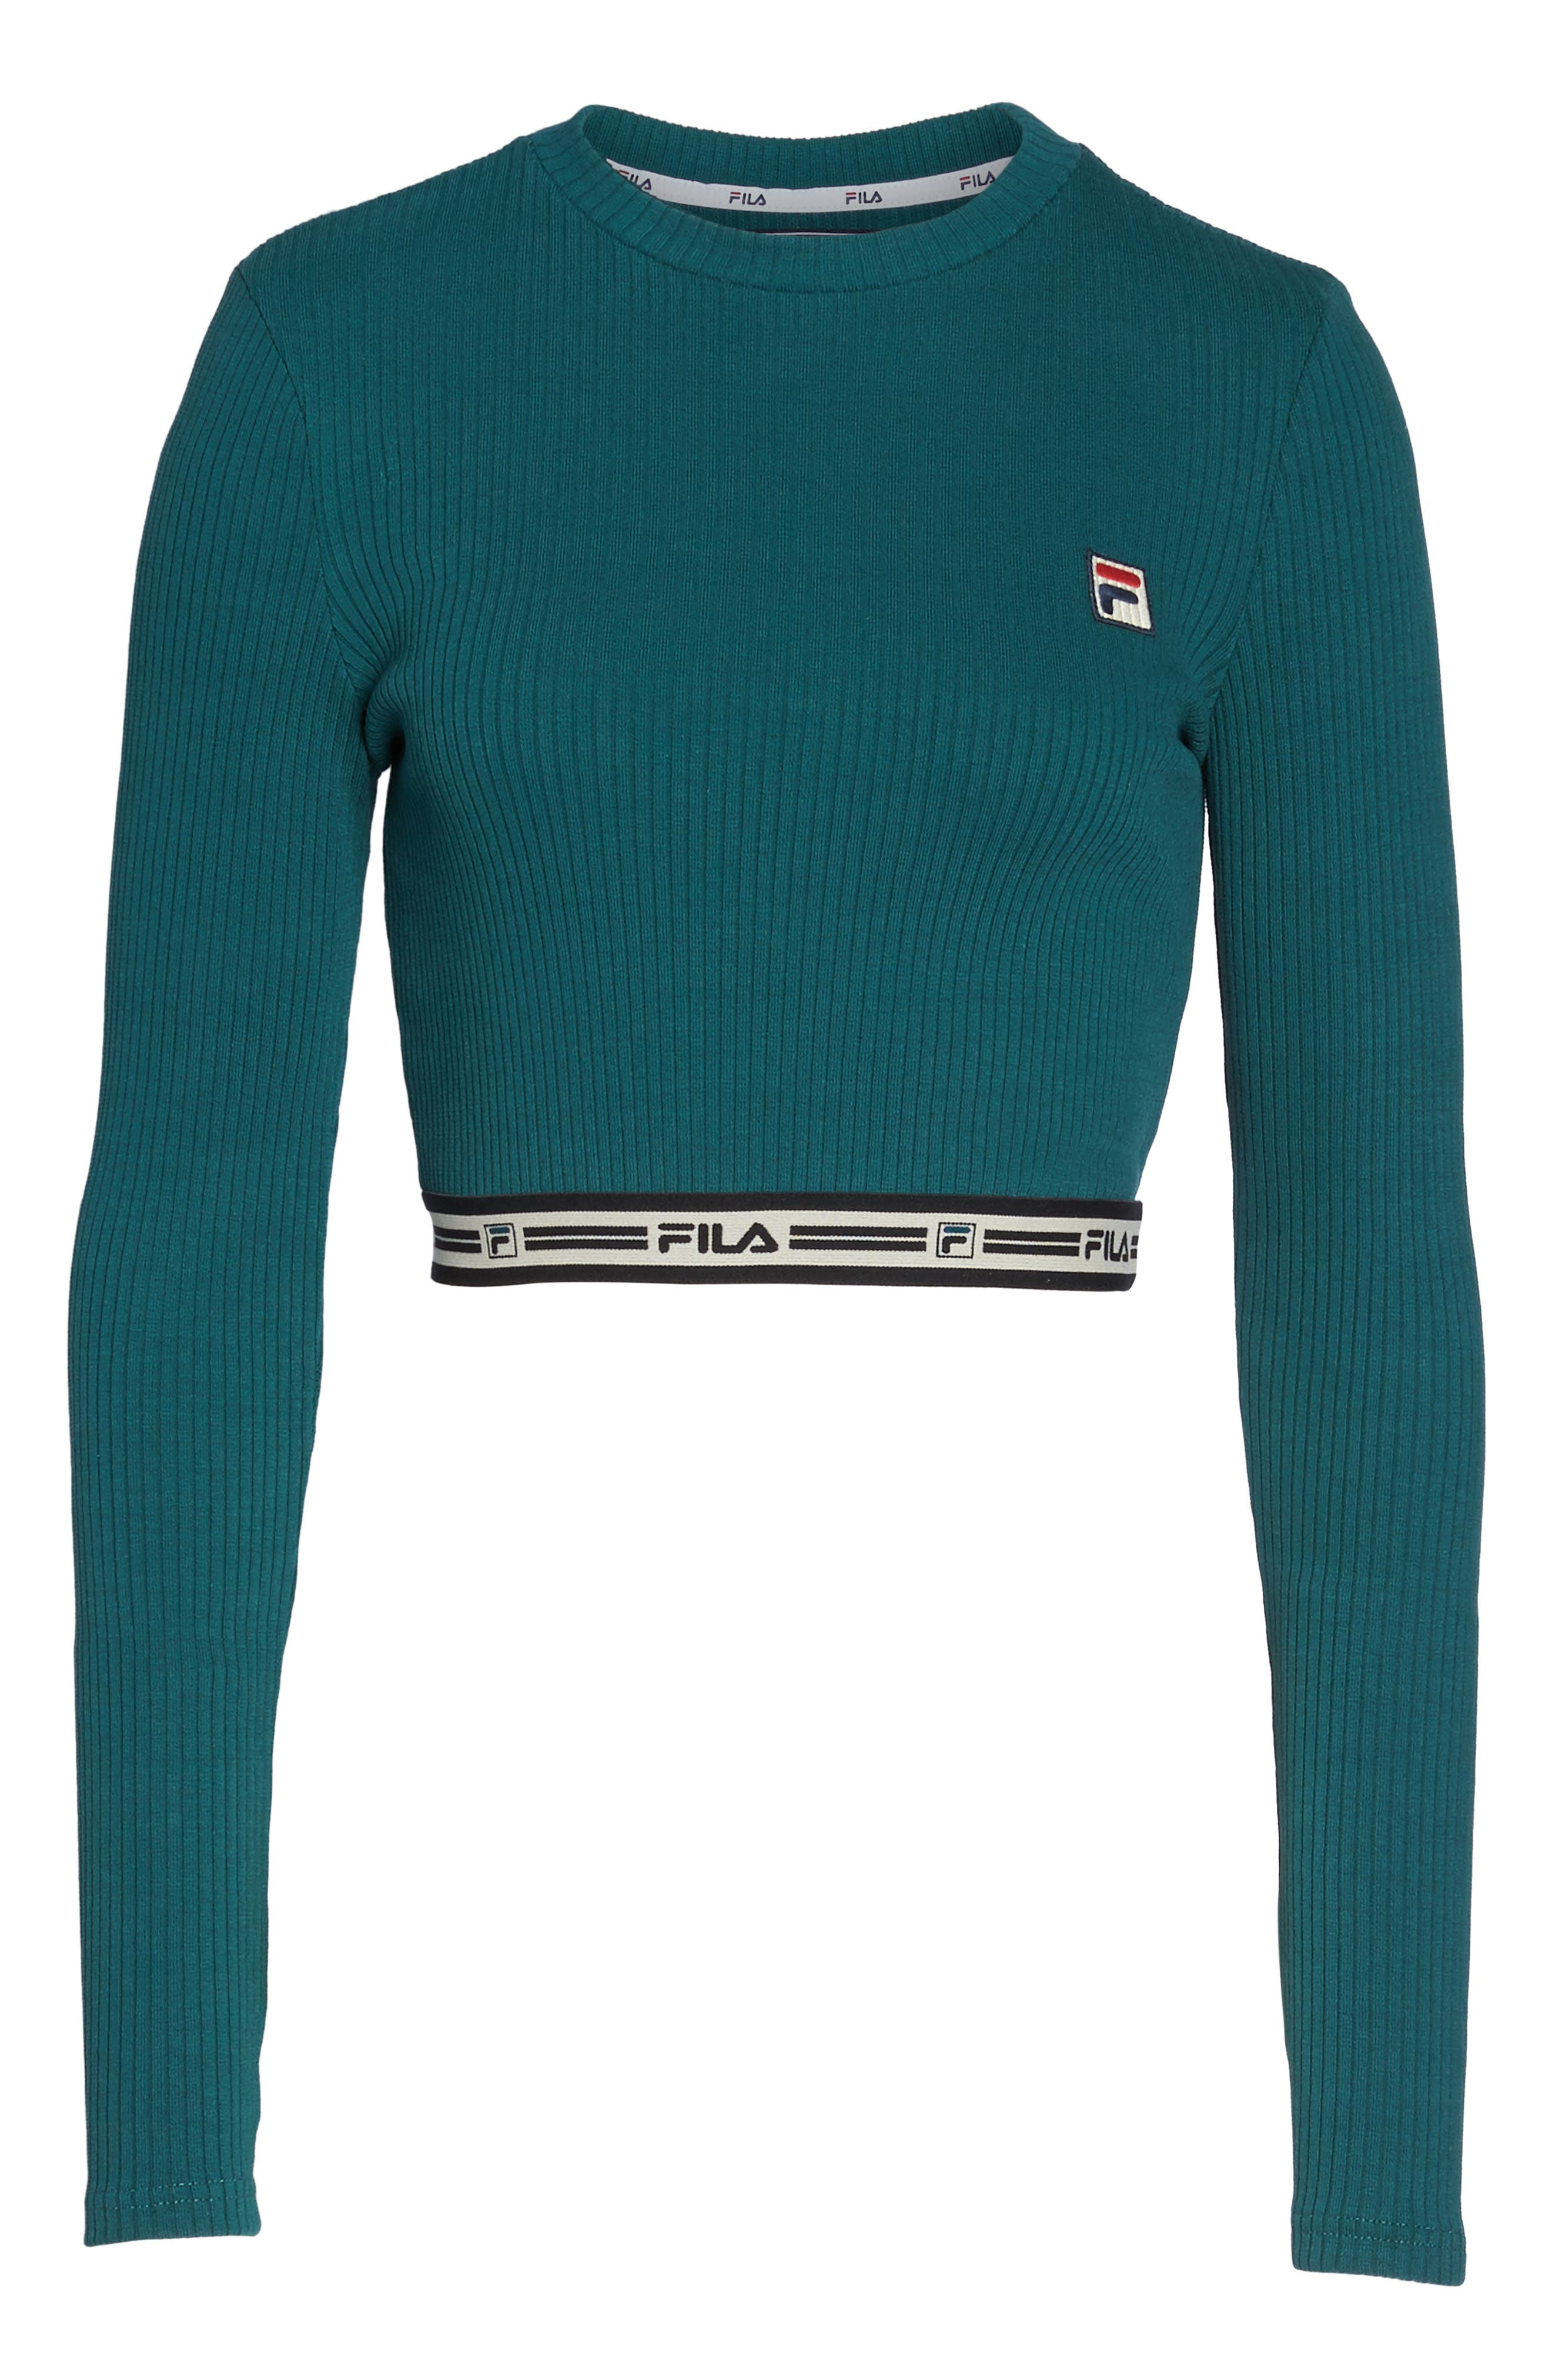 Colleen Long Sleeve Crop Top,                             Alternate thumbnail 7, color,                             440